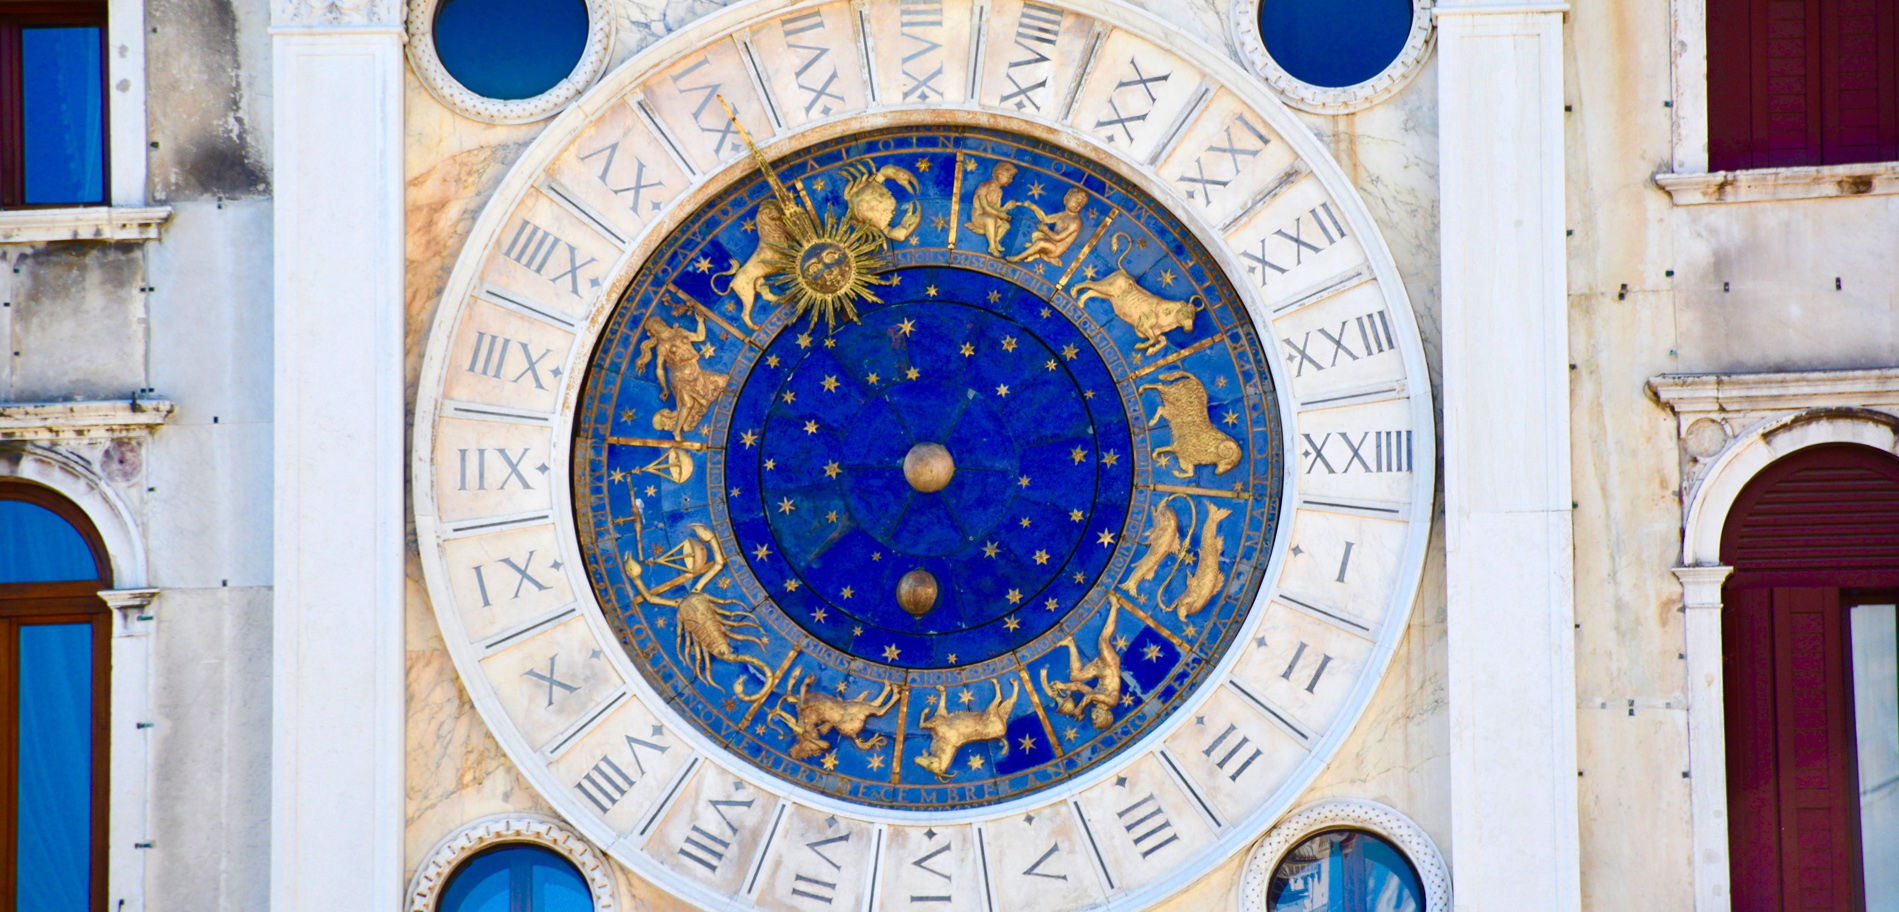 horoscope-astrology-website-industrywebsites-mobile-responsive-device-brampton-thewebmiracle-ontario-canada-webdevelopment-developer-graphicdesigner